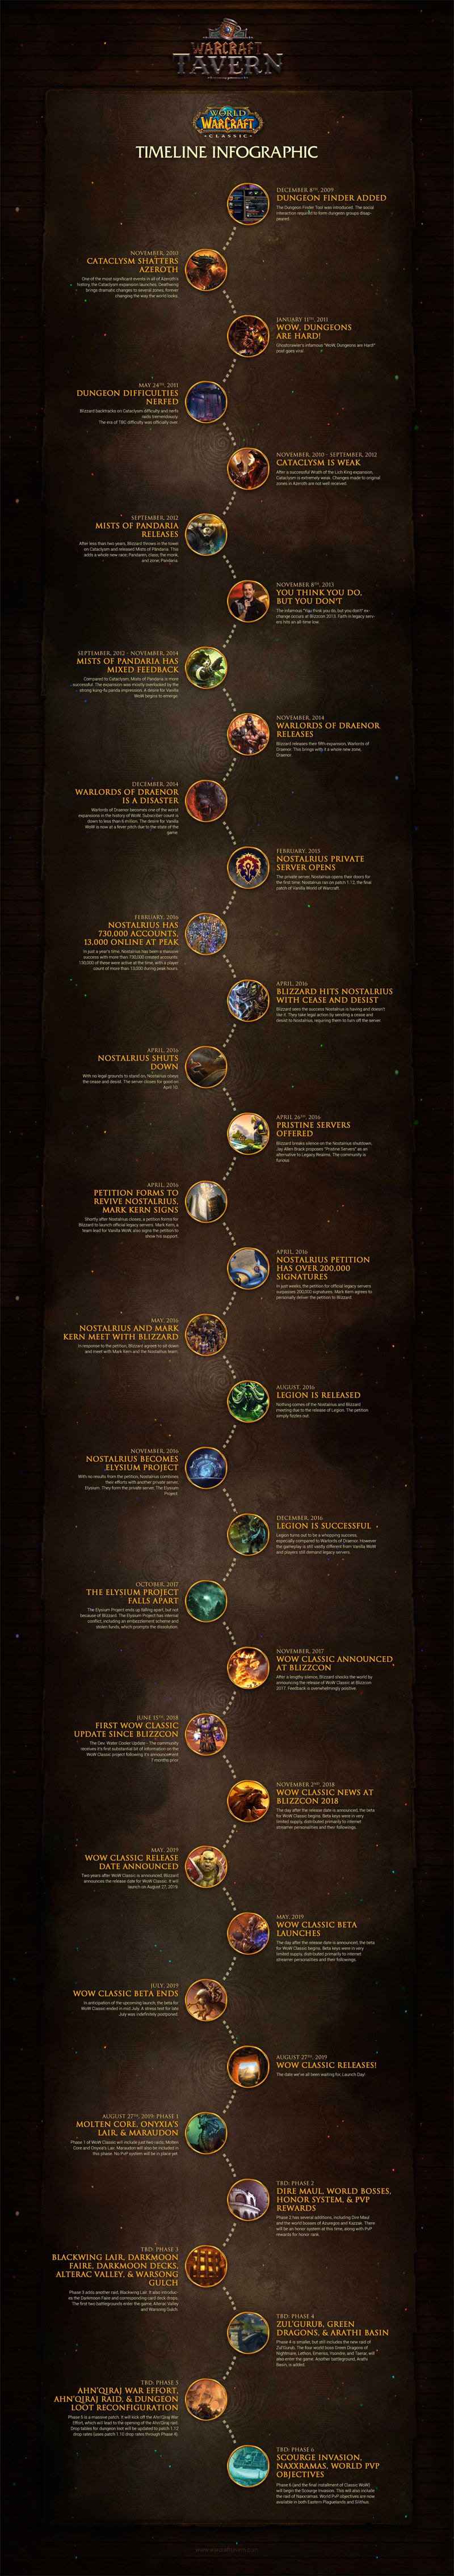 World of Warcraft Classic - A Timeline Infographic